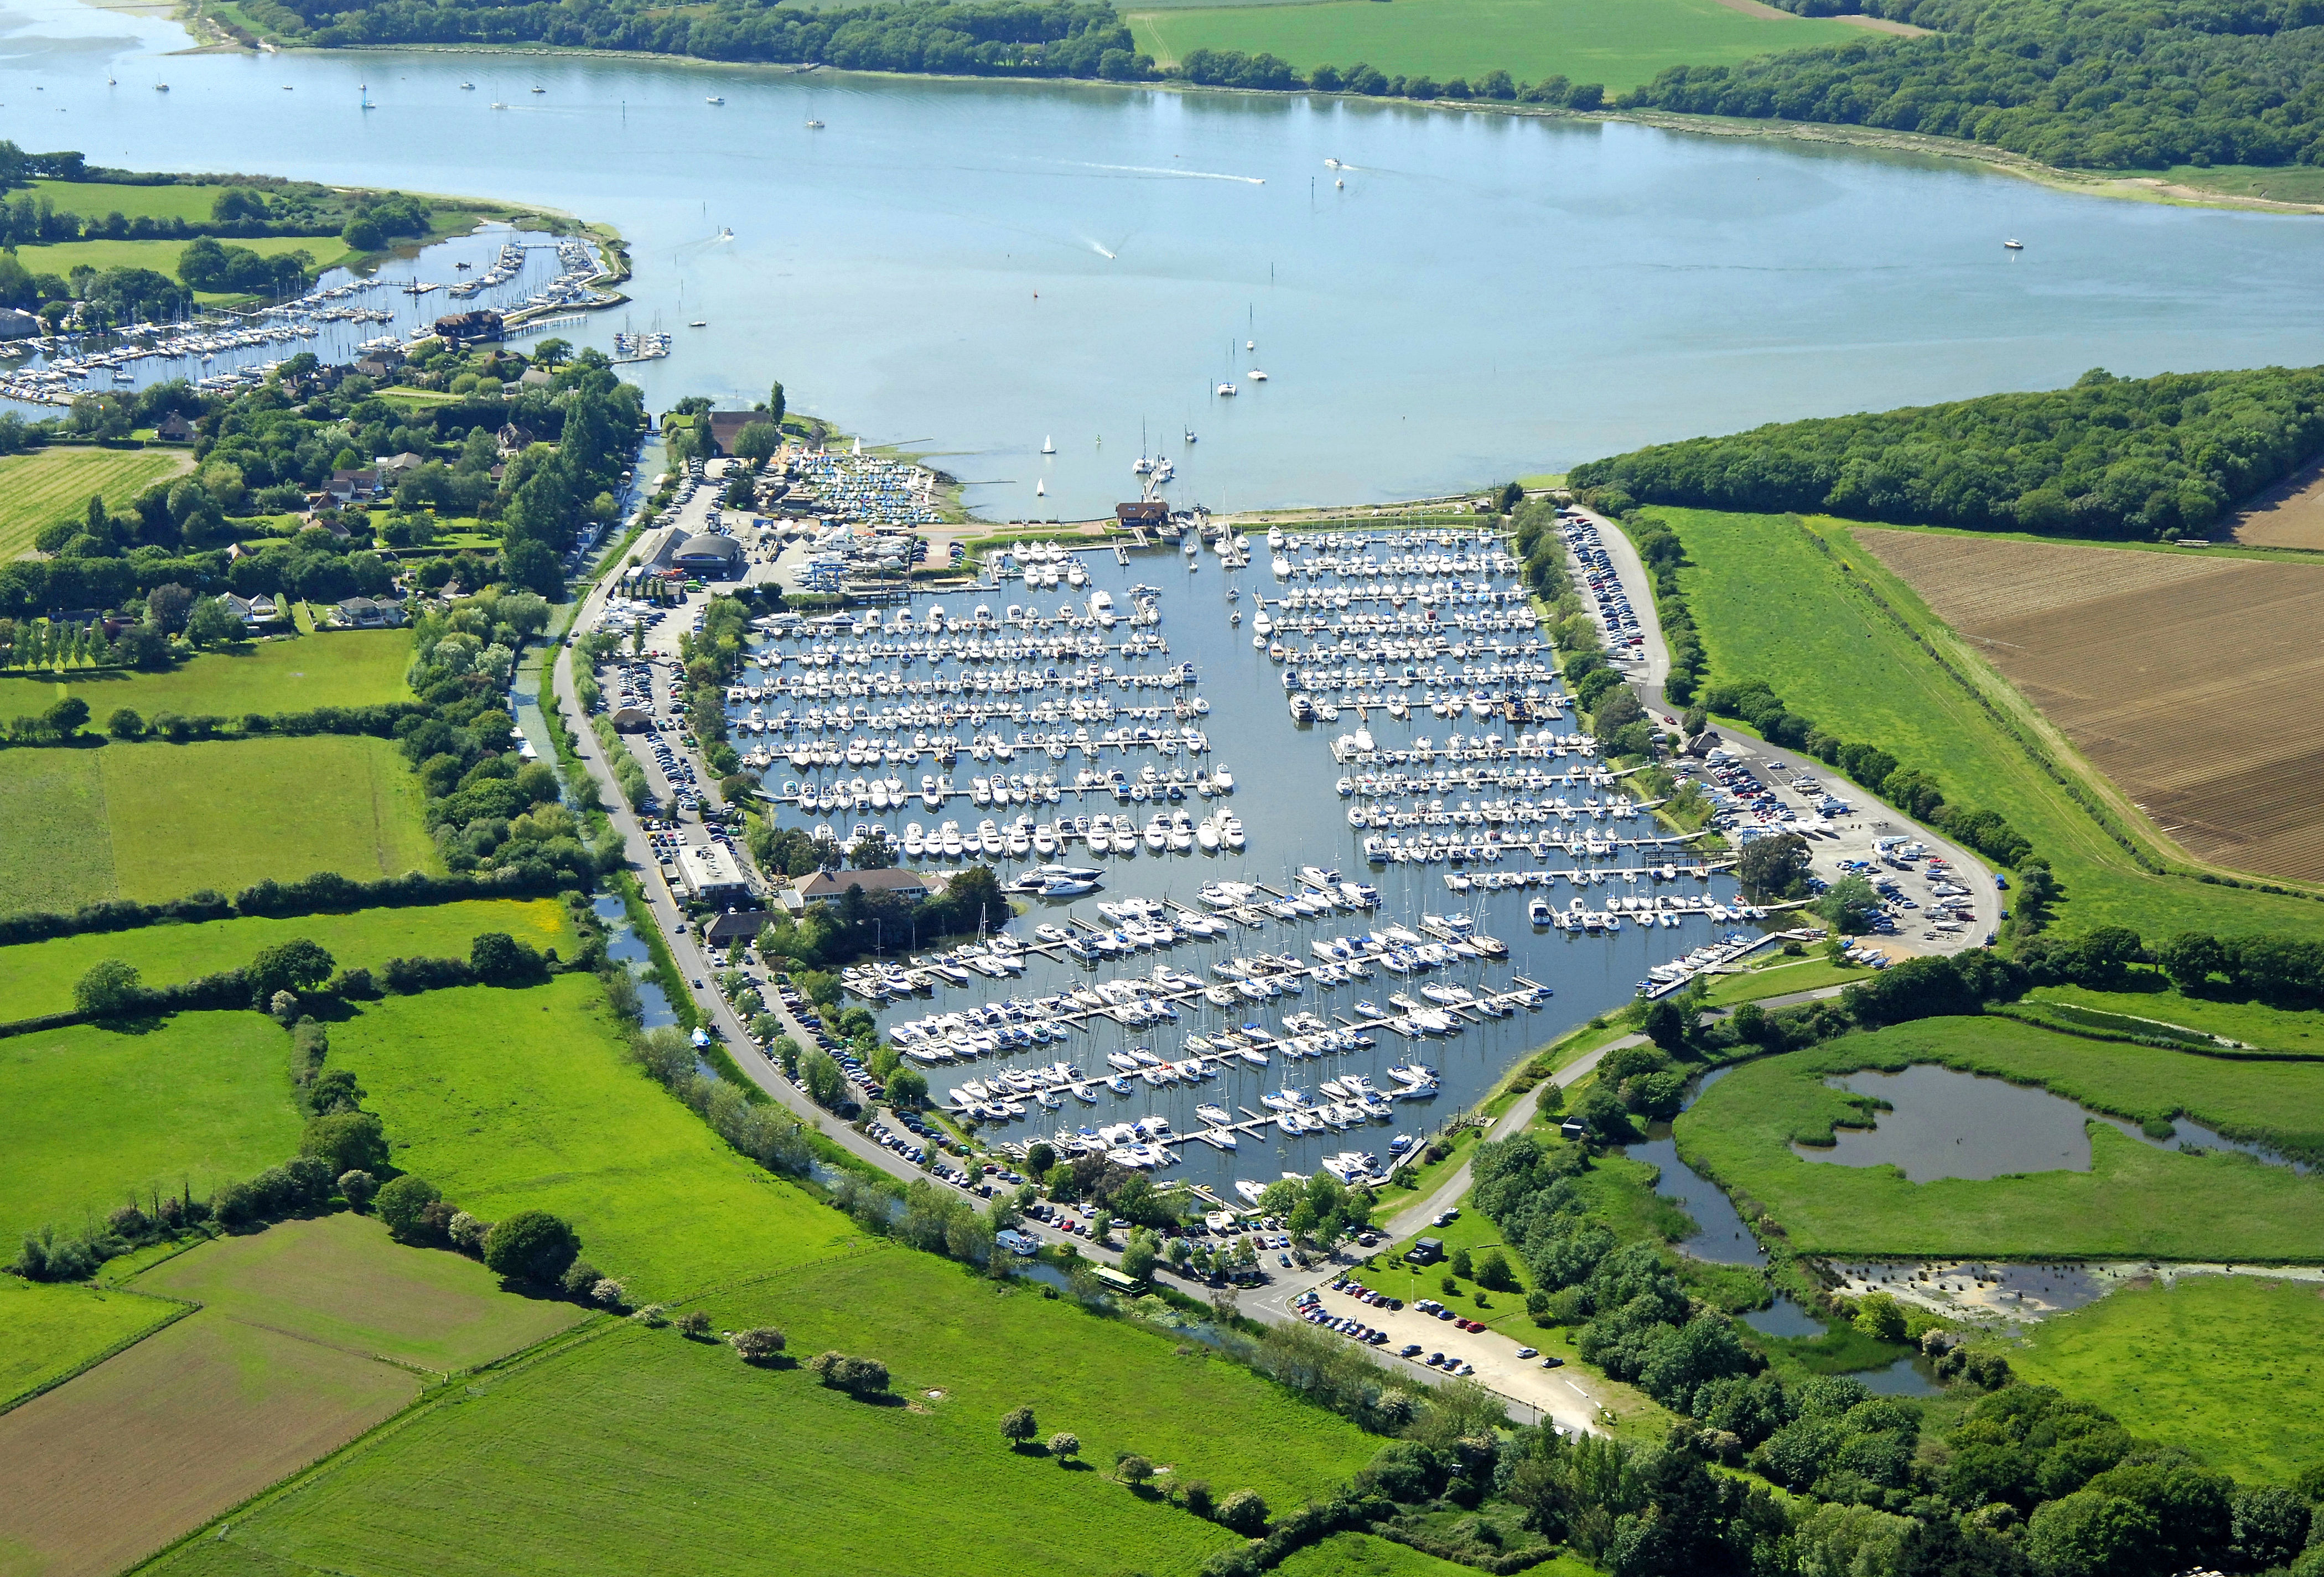 Premier Chichester Marina & Boatyard in Chichester, West Sussex, GB, United Kingdom - Marina Reviews - Phone Number - Marinas.com